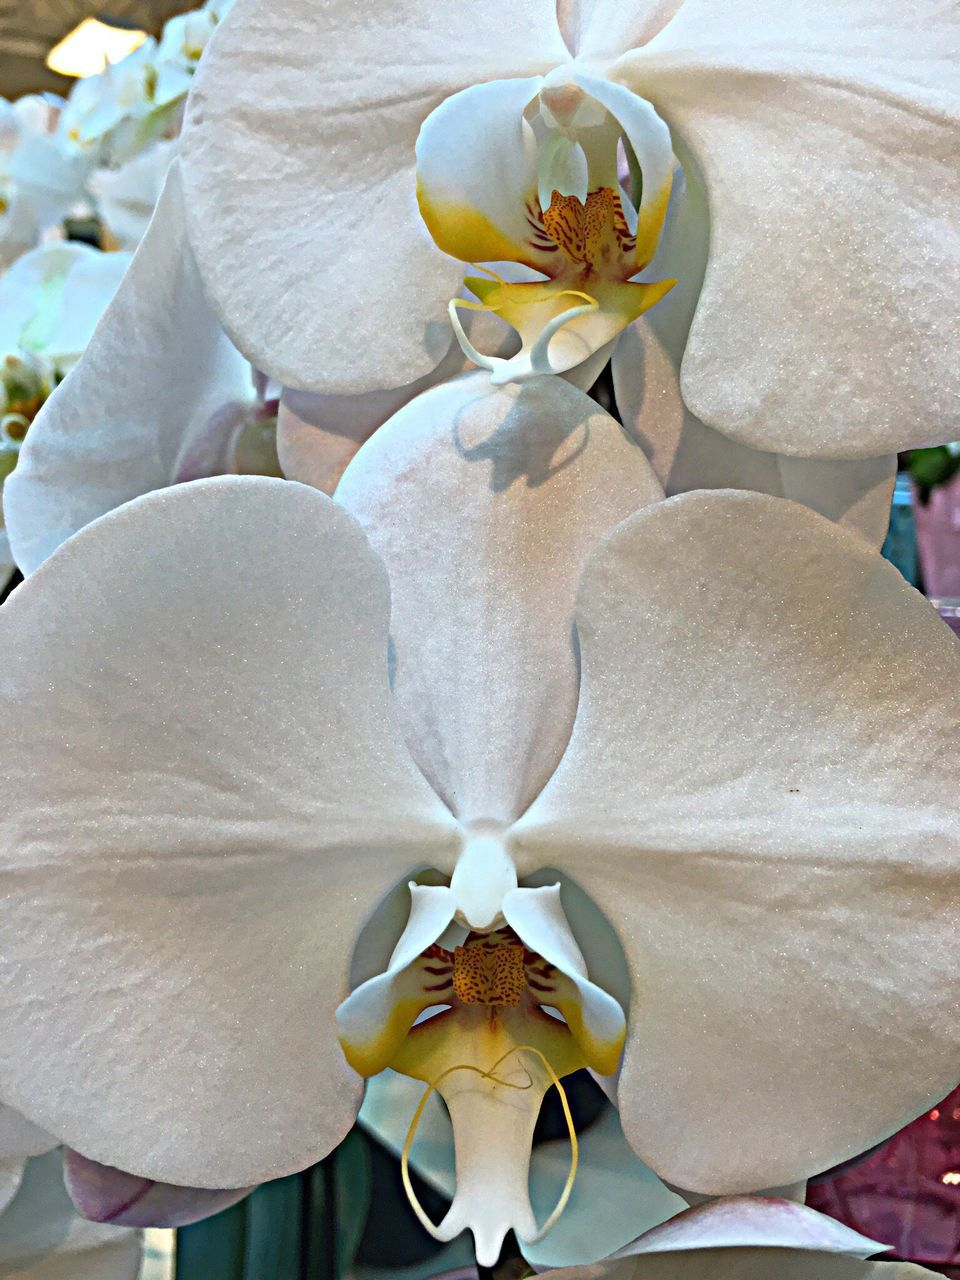 flower, petal, flower head, fragility, growth, nature, beauty in nature, plant, close-up, no people, pollen, stamen, freshness, leaf, day, blooming, orchid, outdoors, iris - plant